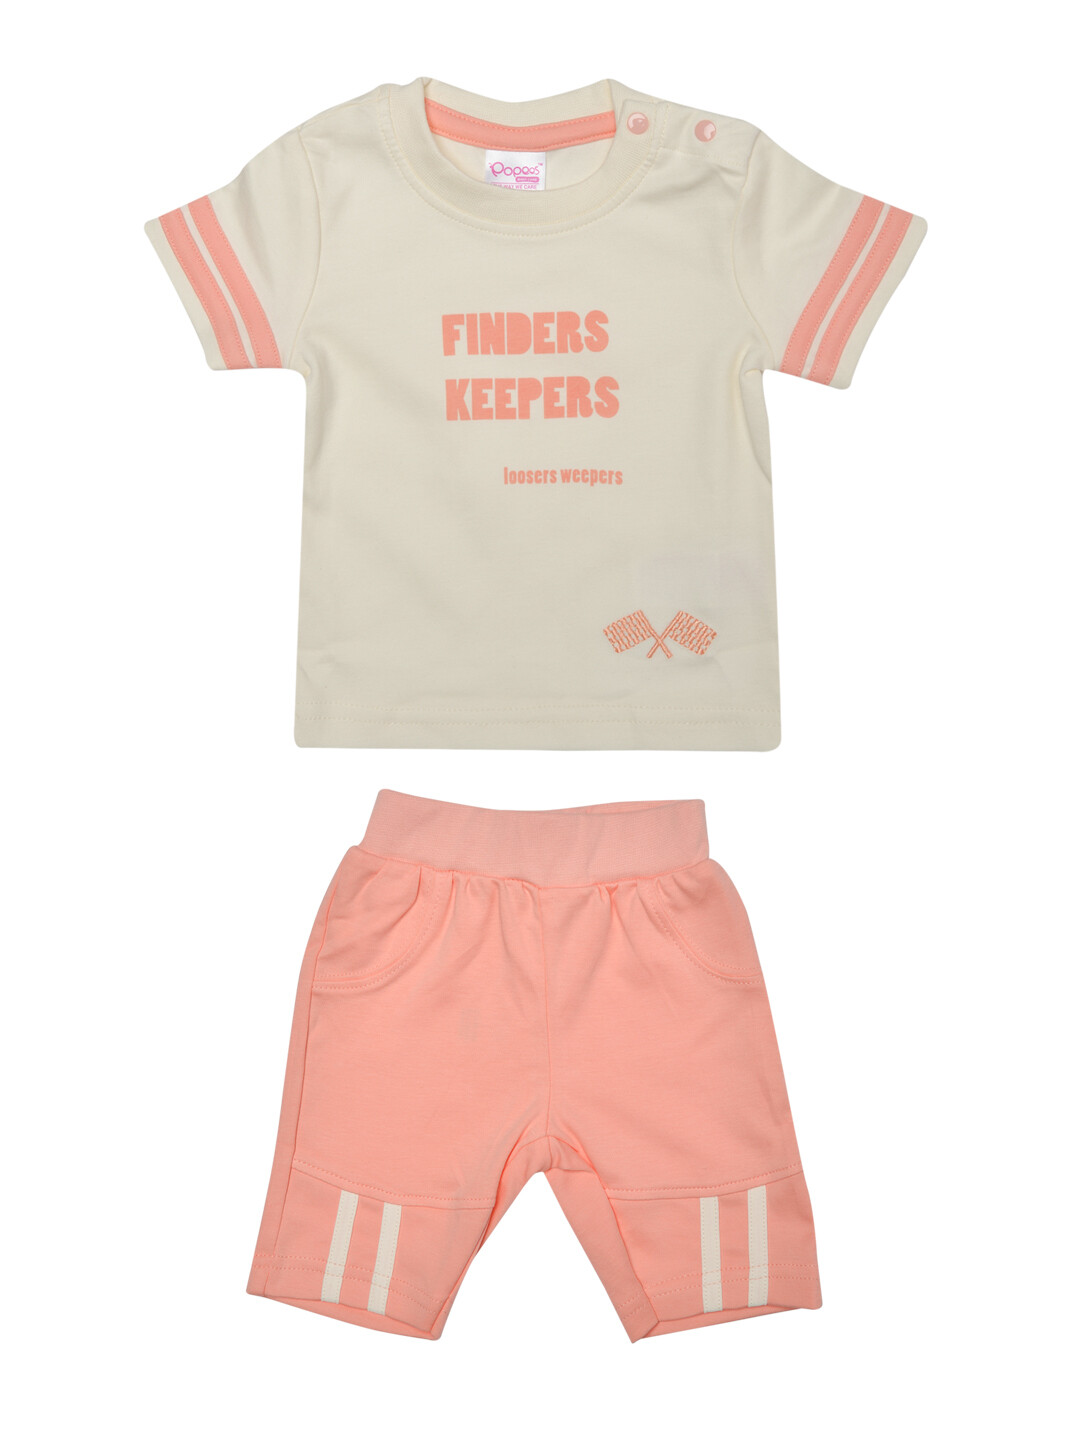 Cops Peach Blush Half Sleeves Top with Shorts